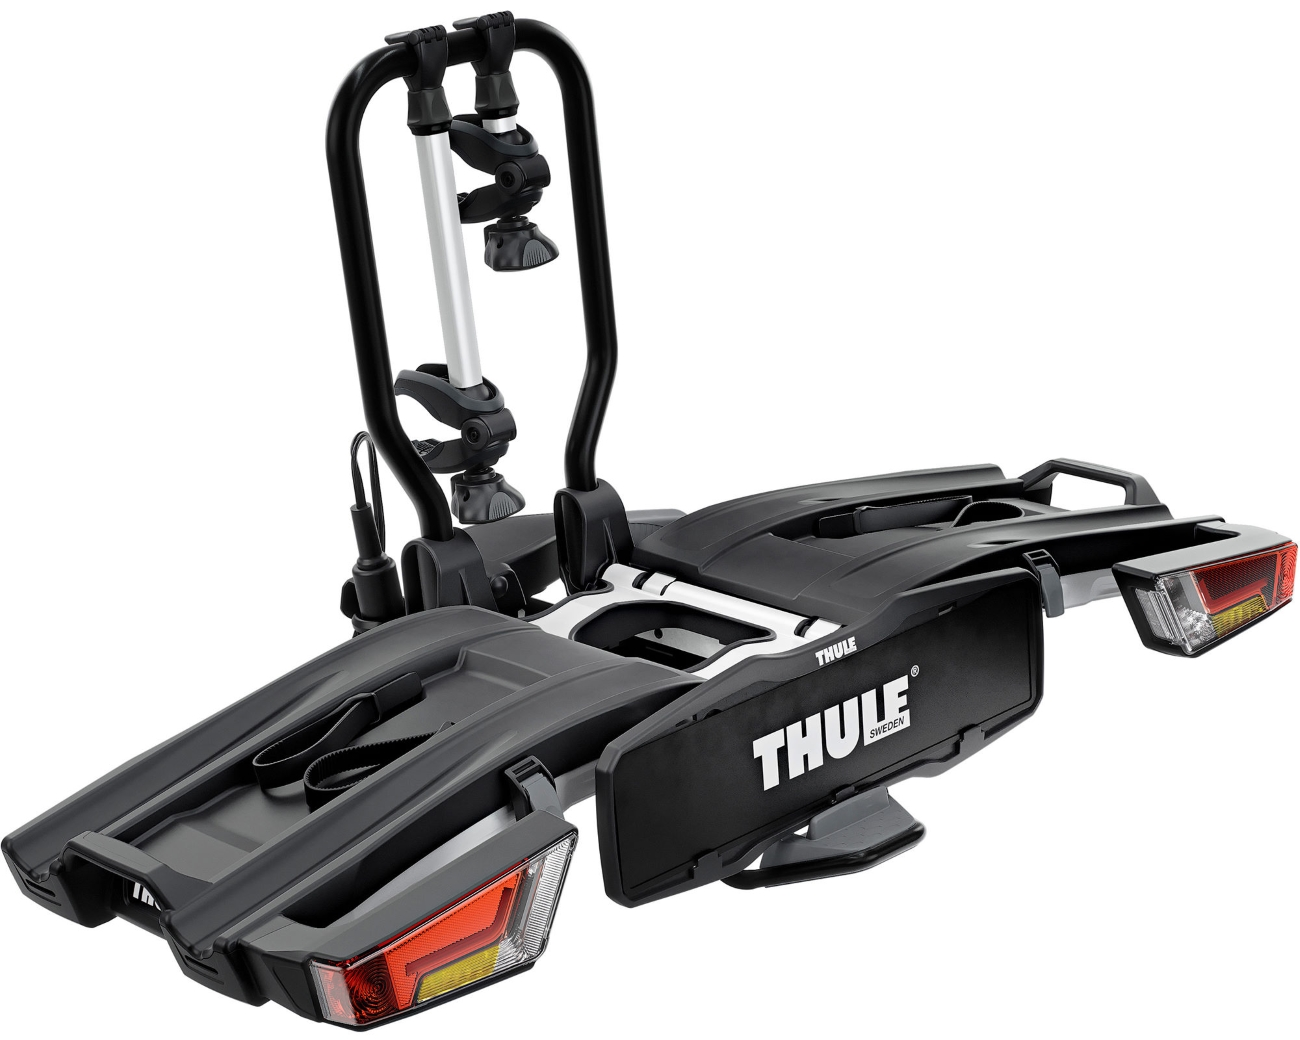 thule easyfold xt 2 933 folding e bike carrier for towbars